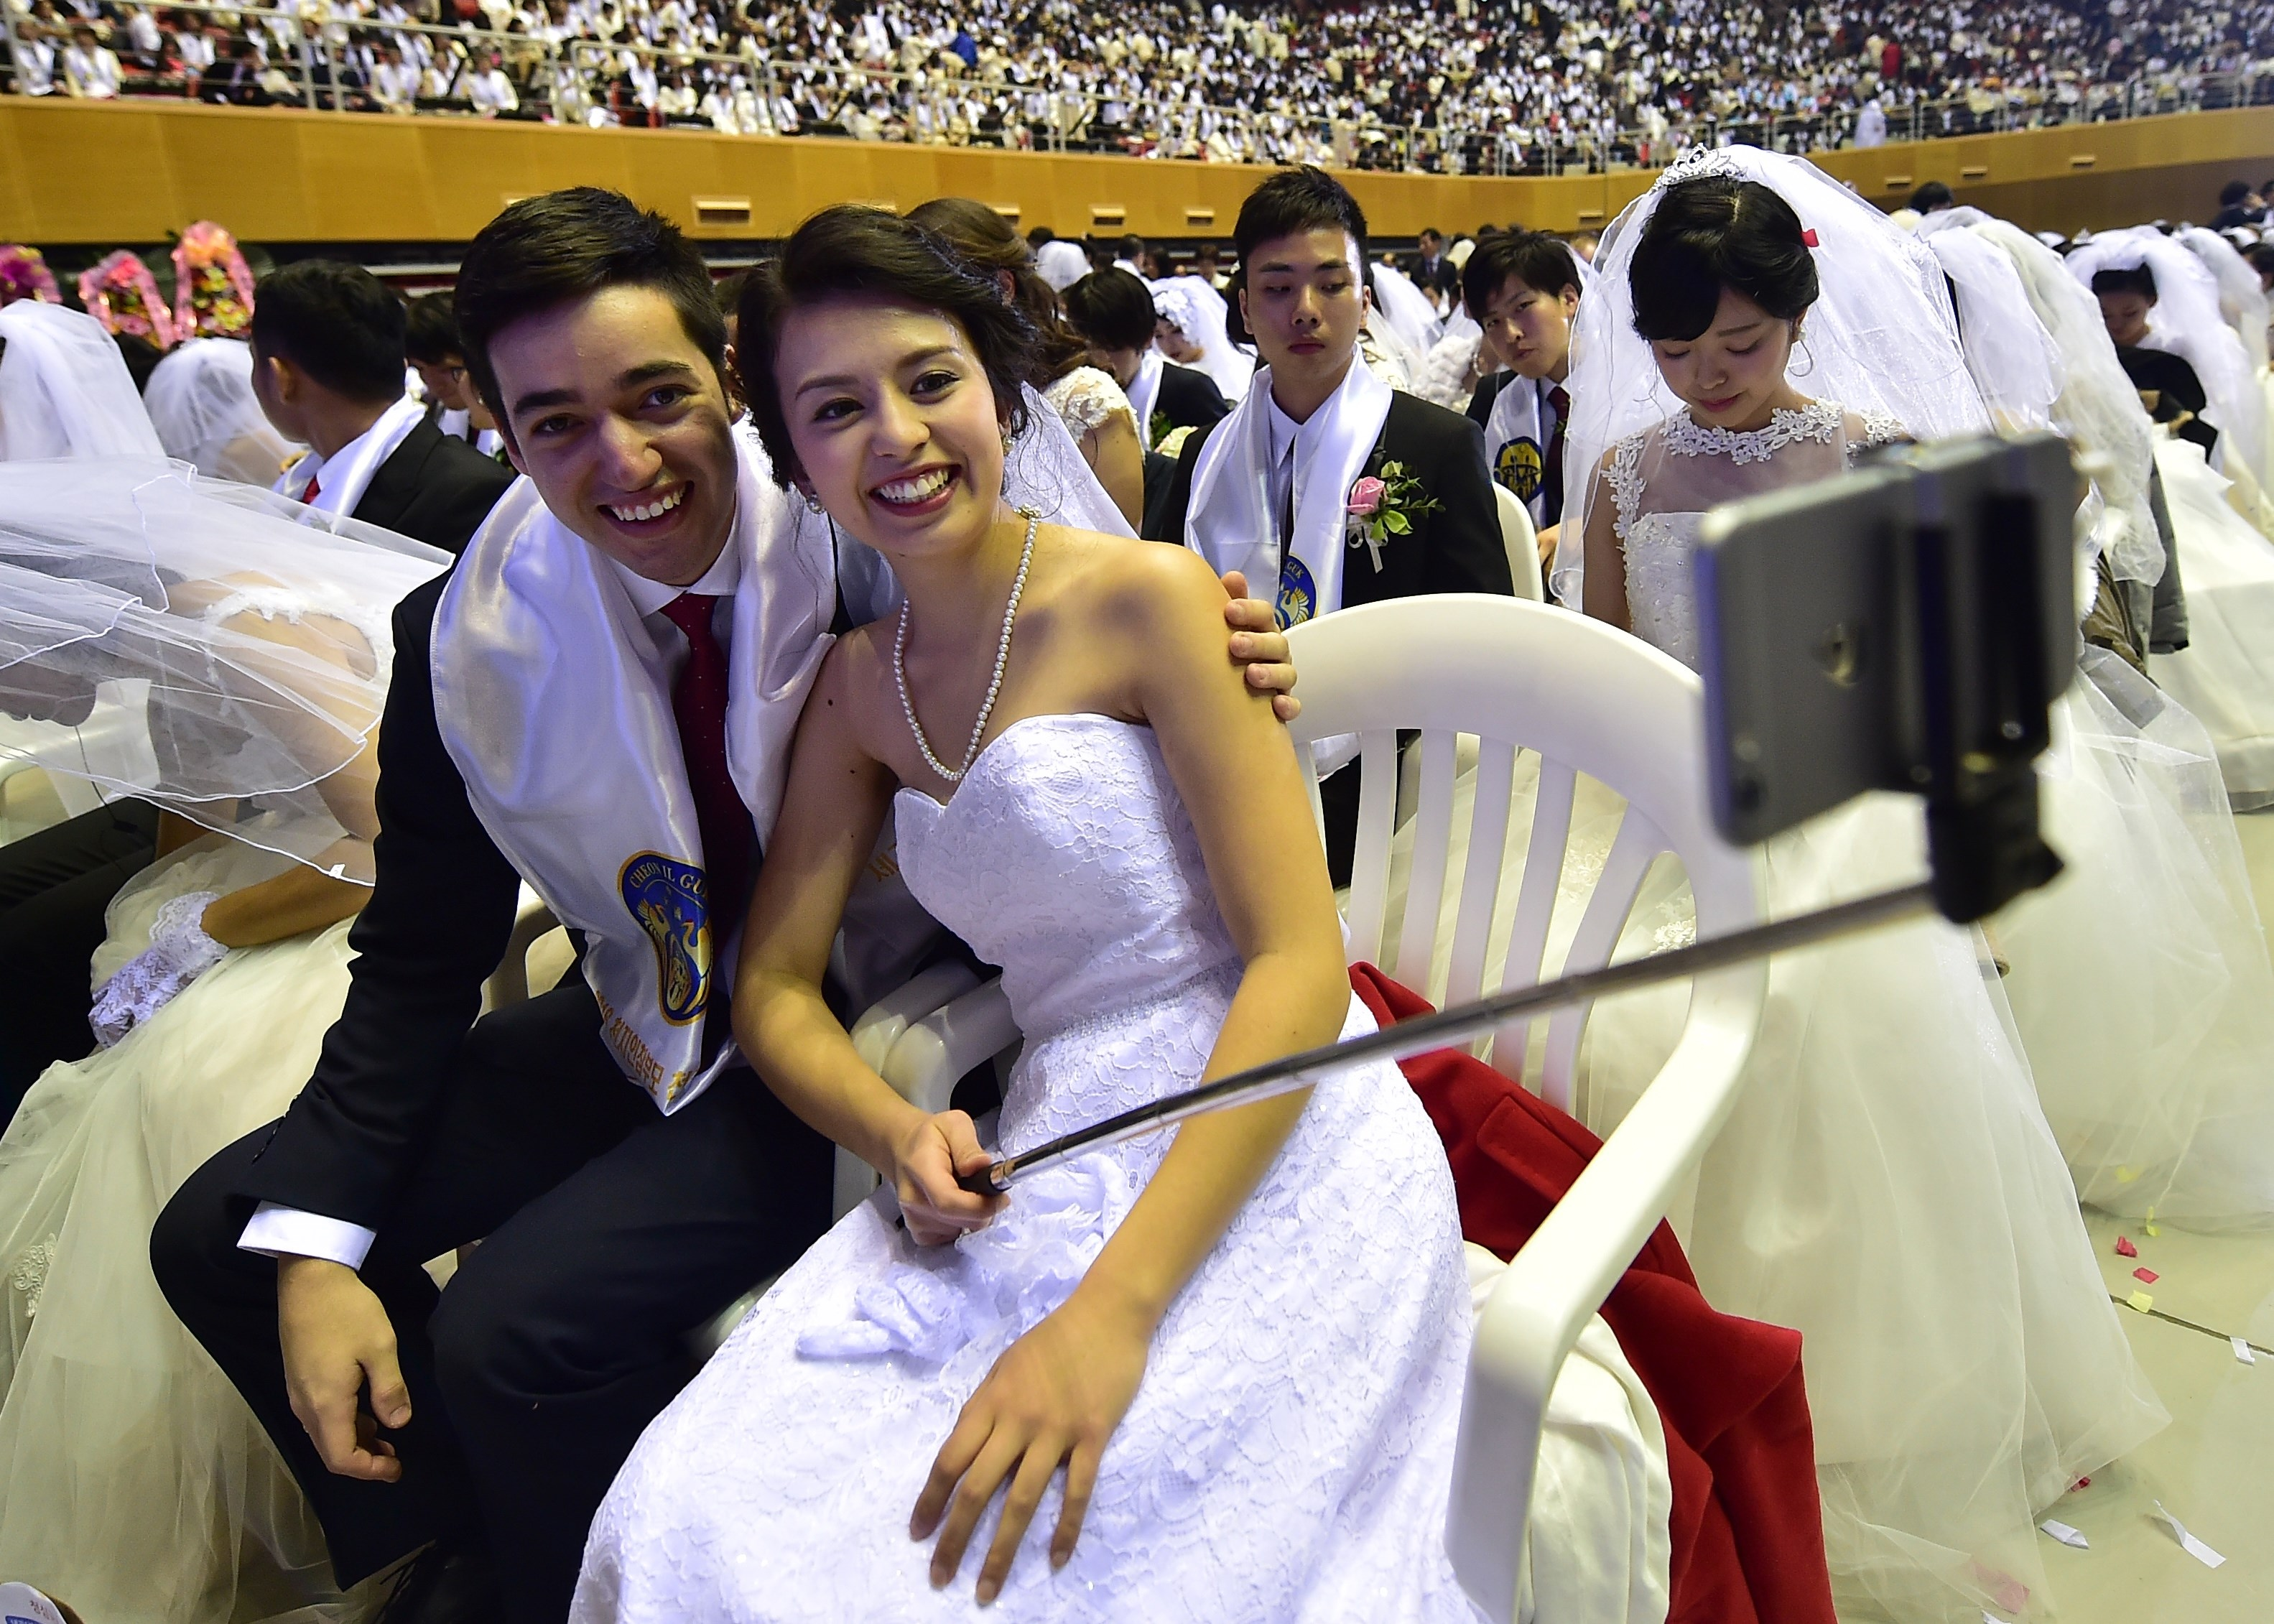 """A couple take a selfie during a mass wedding held by the Unification Church at Cheongshim Peace World Center in Gapyeong, east of Seoul, on February 20, 2016. Hundreds of couples were married at the South Korean headquarters of the Unification Church. The Unification Church, set up by Sun Myung Moon in Seoul in 1954, is one of the world's most controversial religious organisations, and its devotees are often dubbed """"Moonies"""" after the founder. AFP PHOTO / JUNG YEON-JE SKOREA--RELIGION-UNIFICATION-MARRIAGE"""